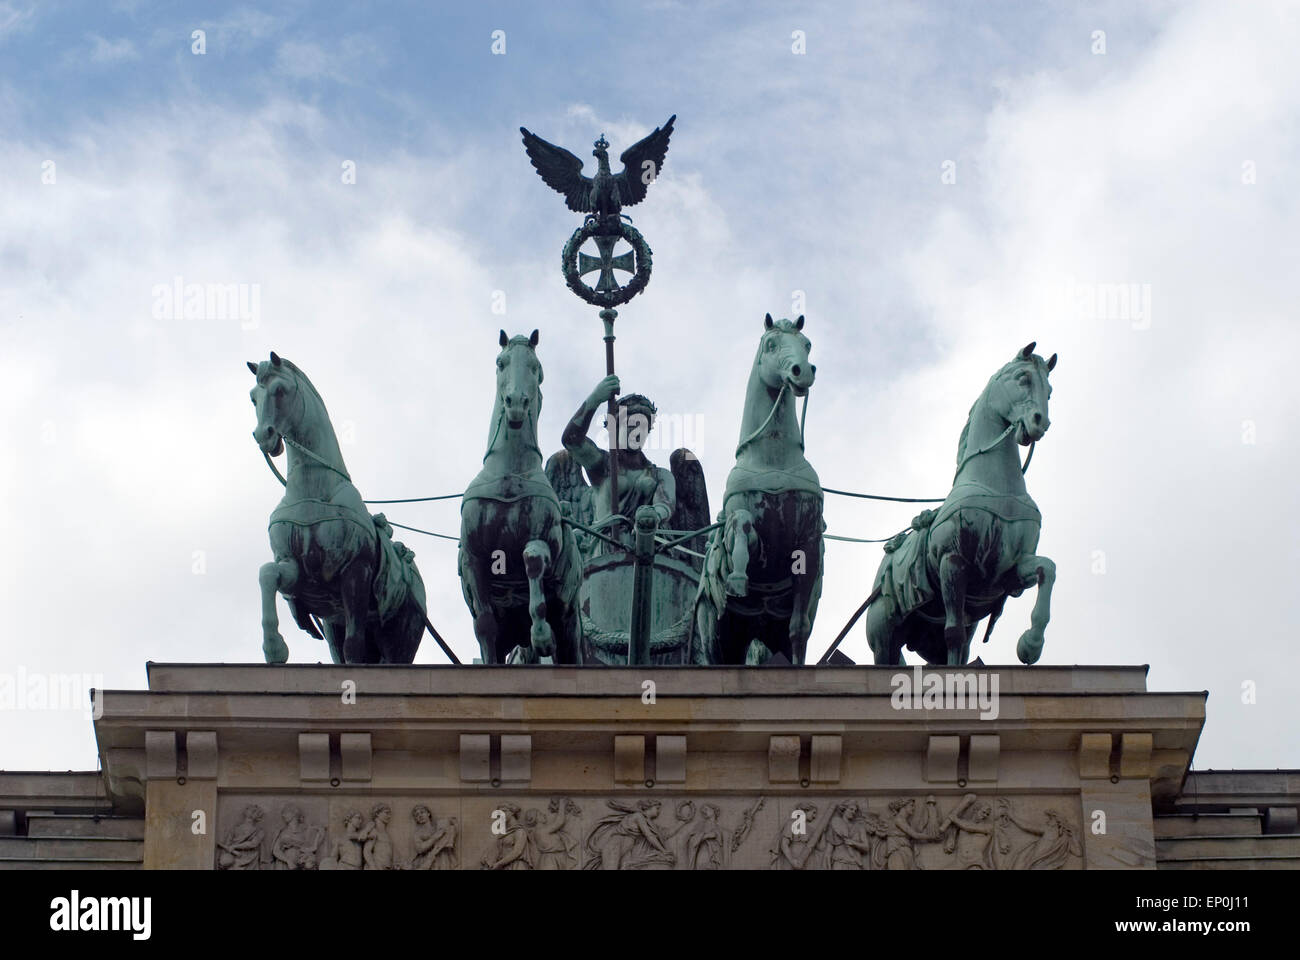 Quadriga on top of Brandenburger Tor Berlin Germany Europe - Stock Image